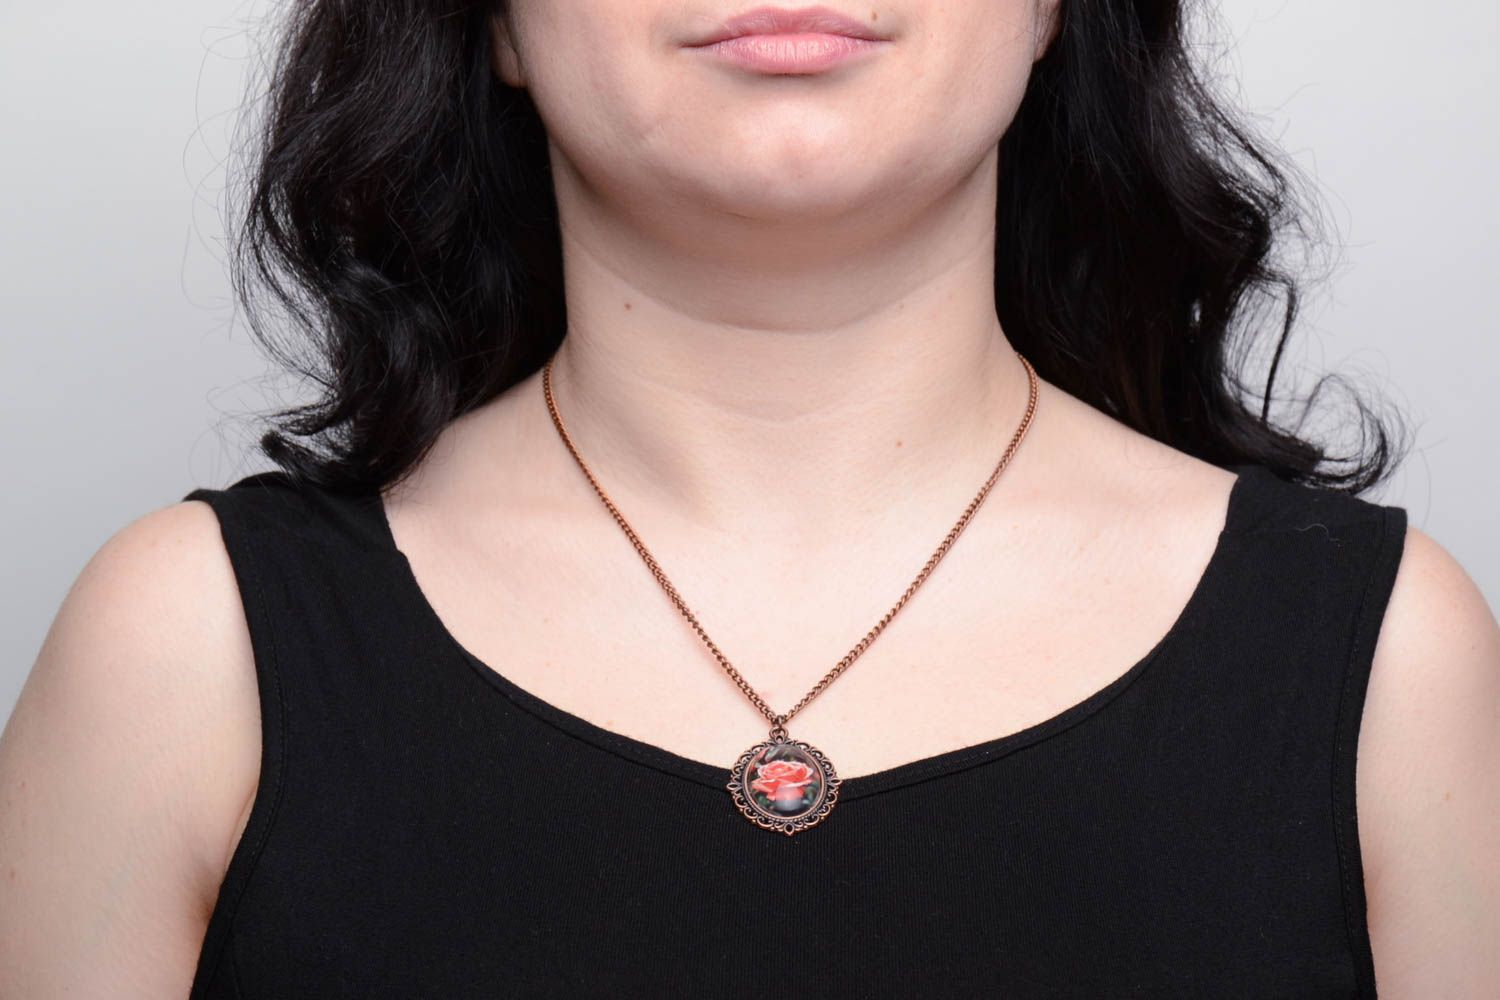 Pendant on long chain with rose photo 5